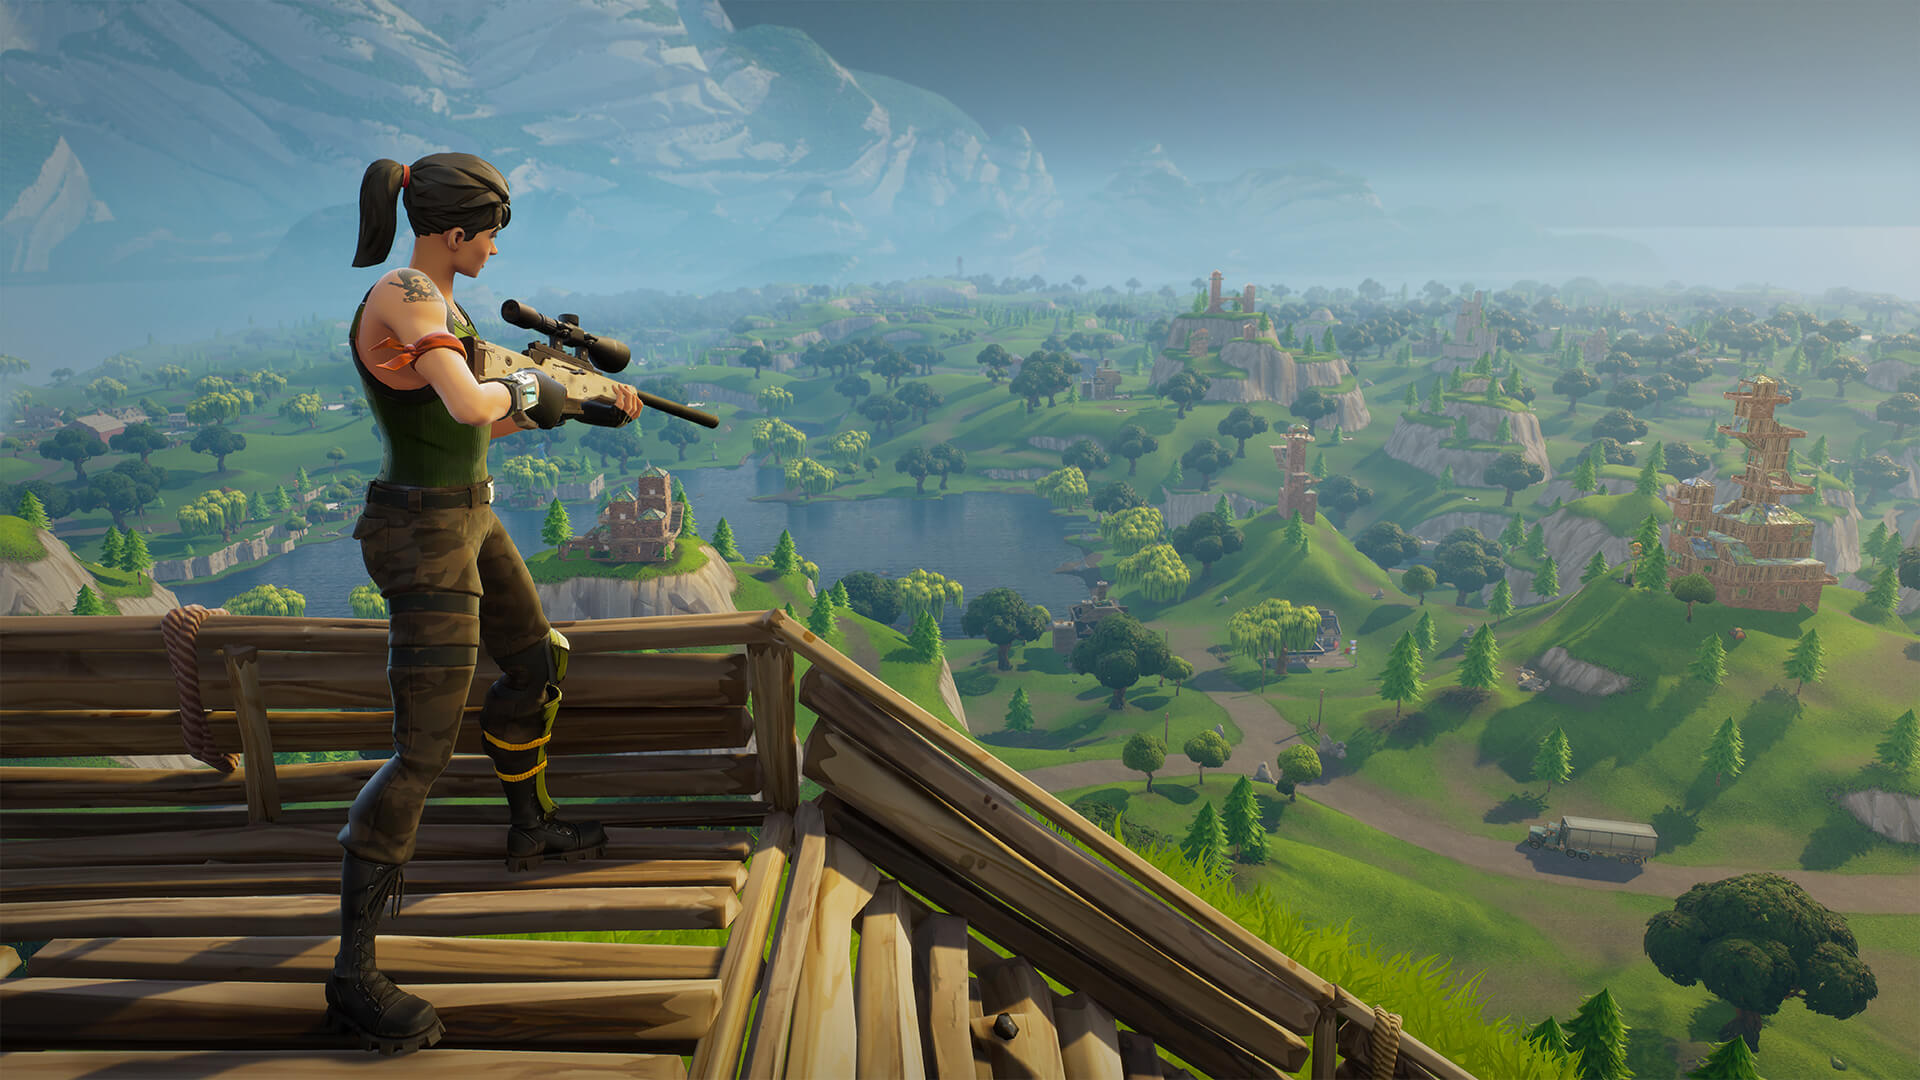 Photo of Team Secret Enters Fortnite With a New Squad, The Youngest Member is 13-year-old Pro Player